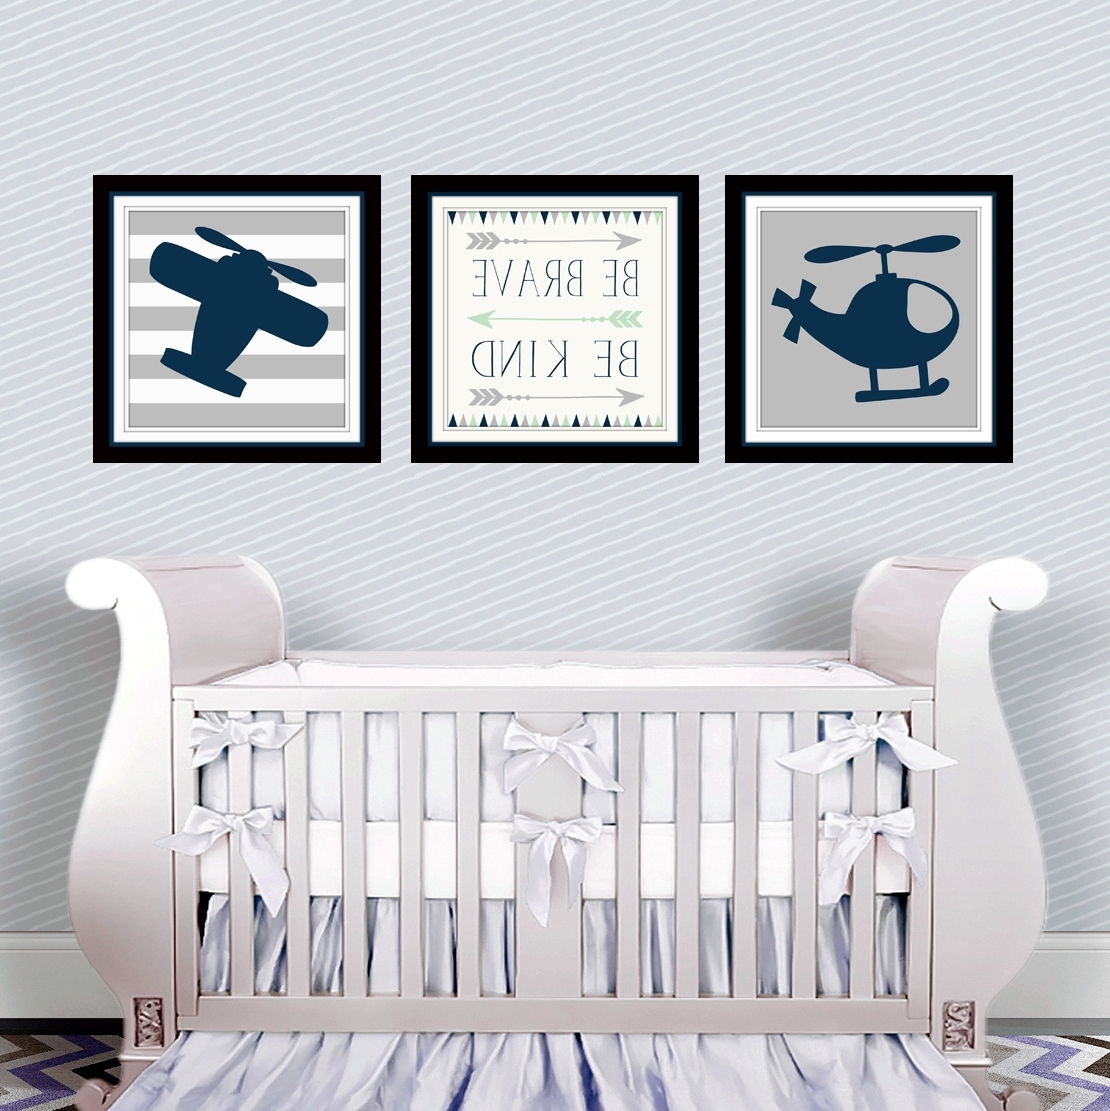 Widely Used Aviation Wall Art Intended For Aviation Nursery Wall Art – (View 20 of 20)